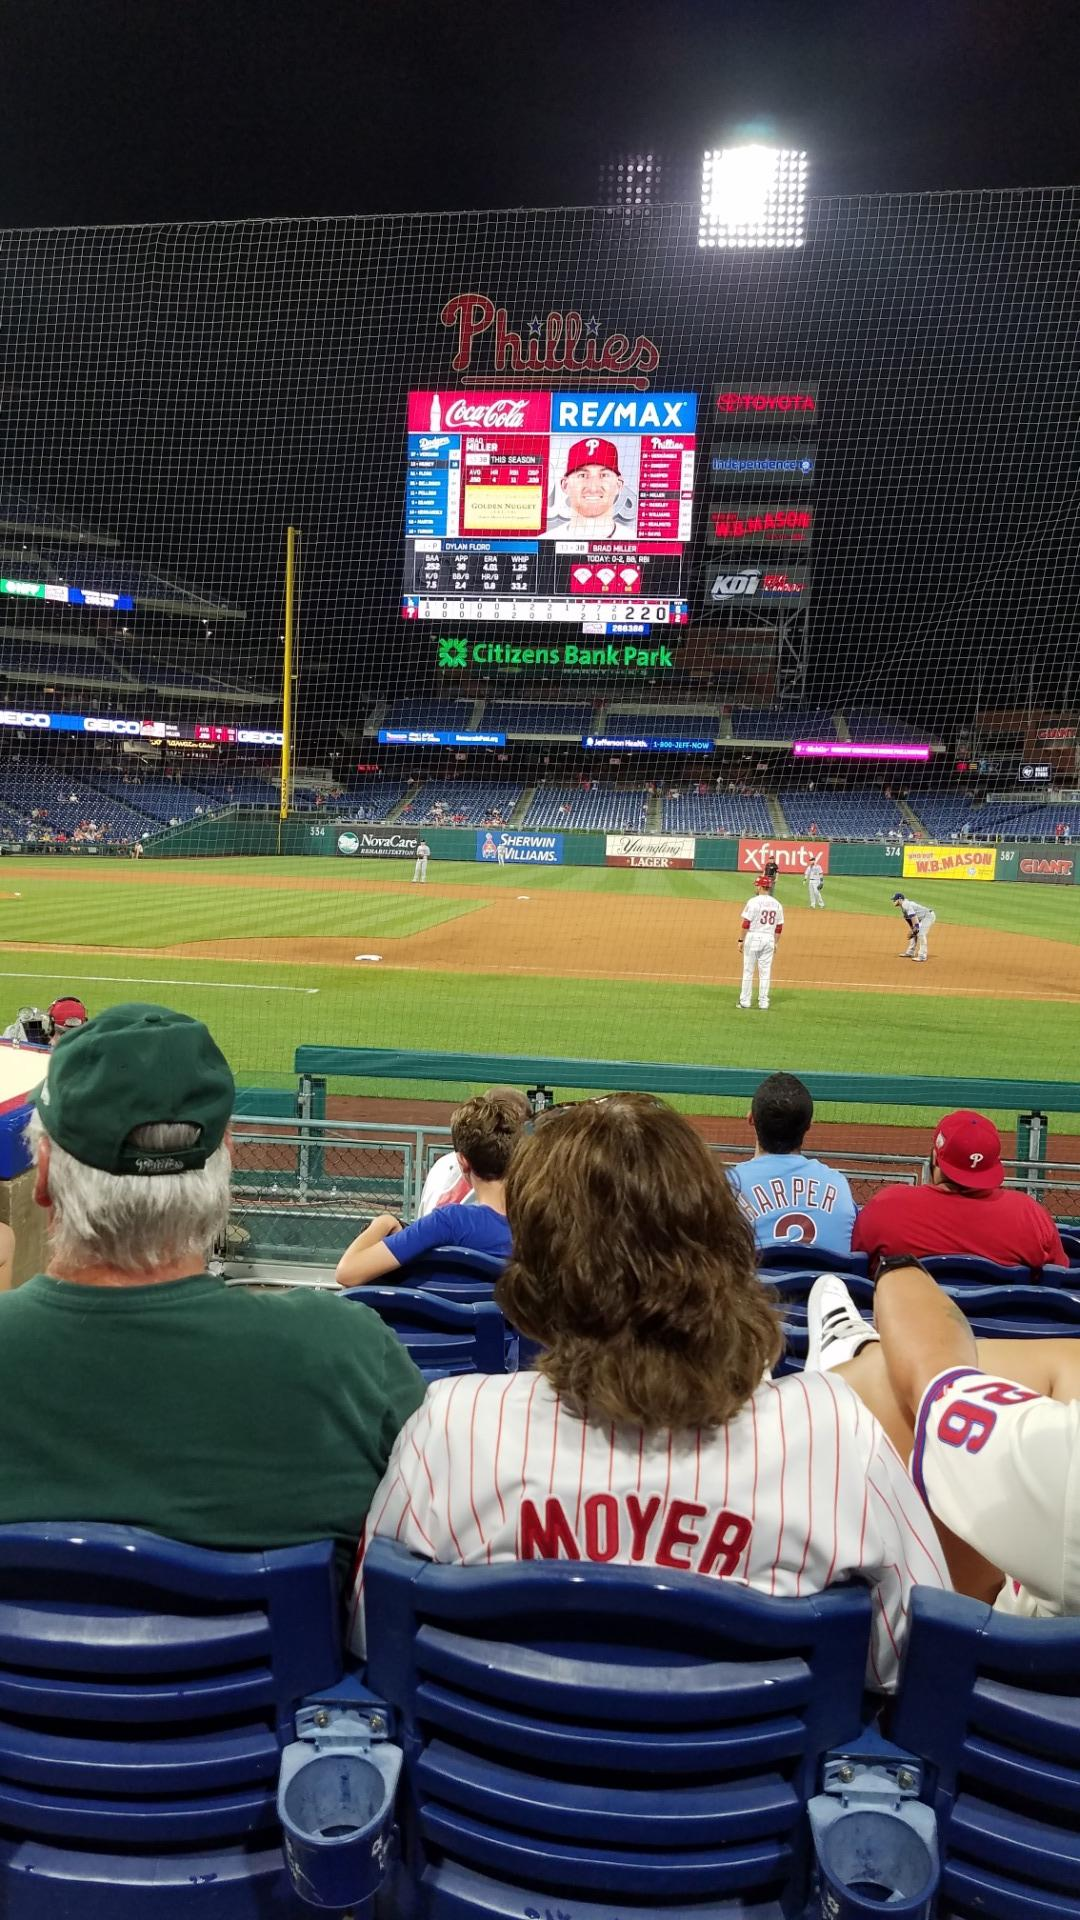 Citizens Bank Park Section 116 Row 6 Seat 18